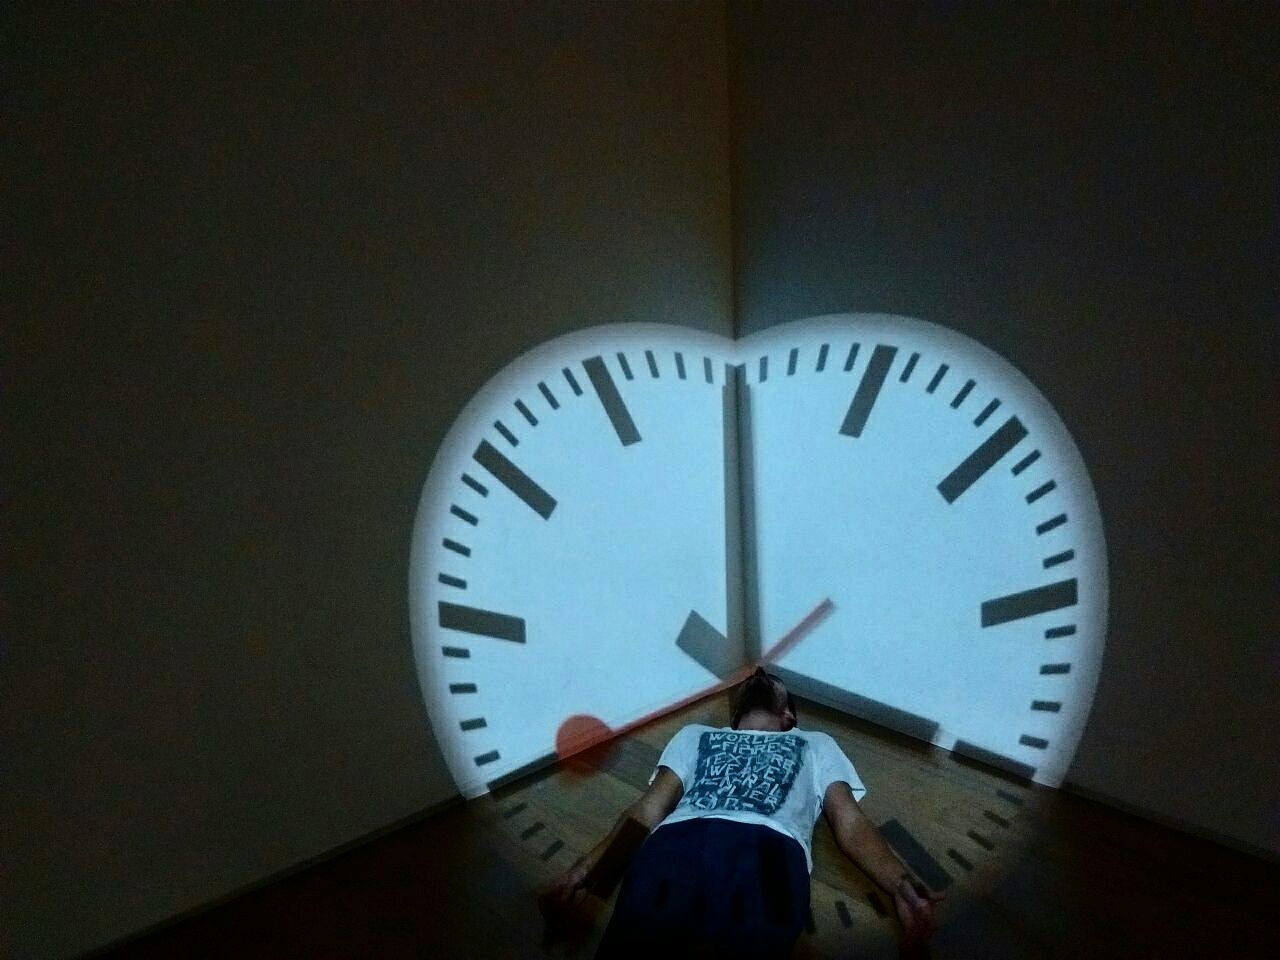 time, real people, one person, clock, indoors, lifestyles, standing, day, clock face, minute hand, hour hand, human hand, people